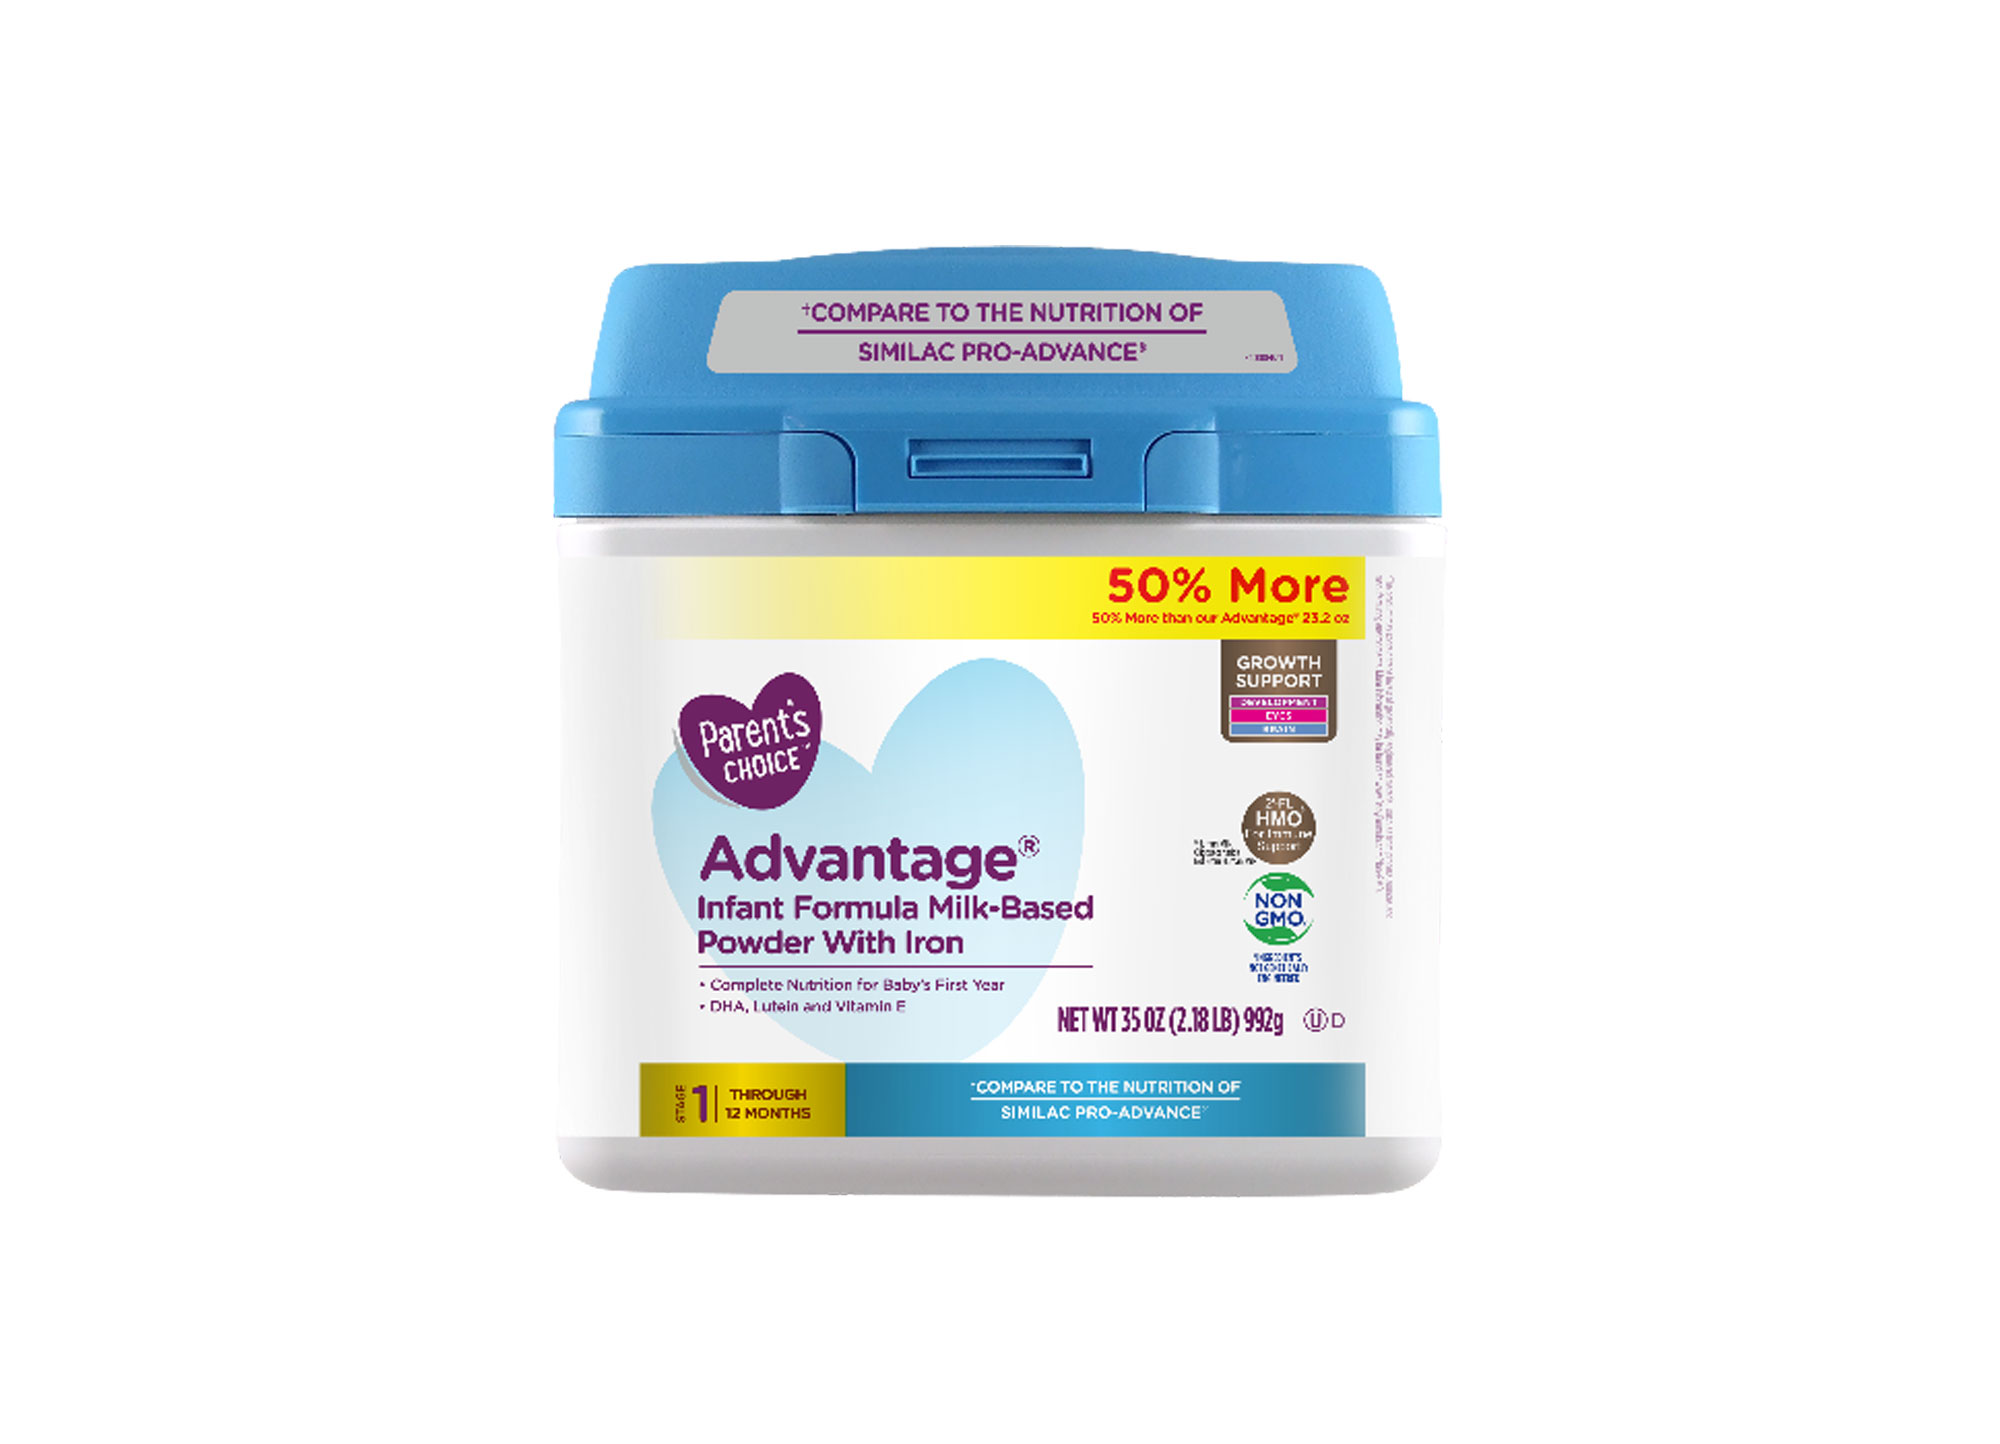 Perrigo Advantage Infant Formula Milk Based Powder With Iron Baby Formula